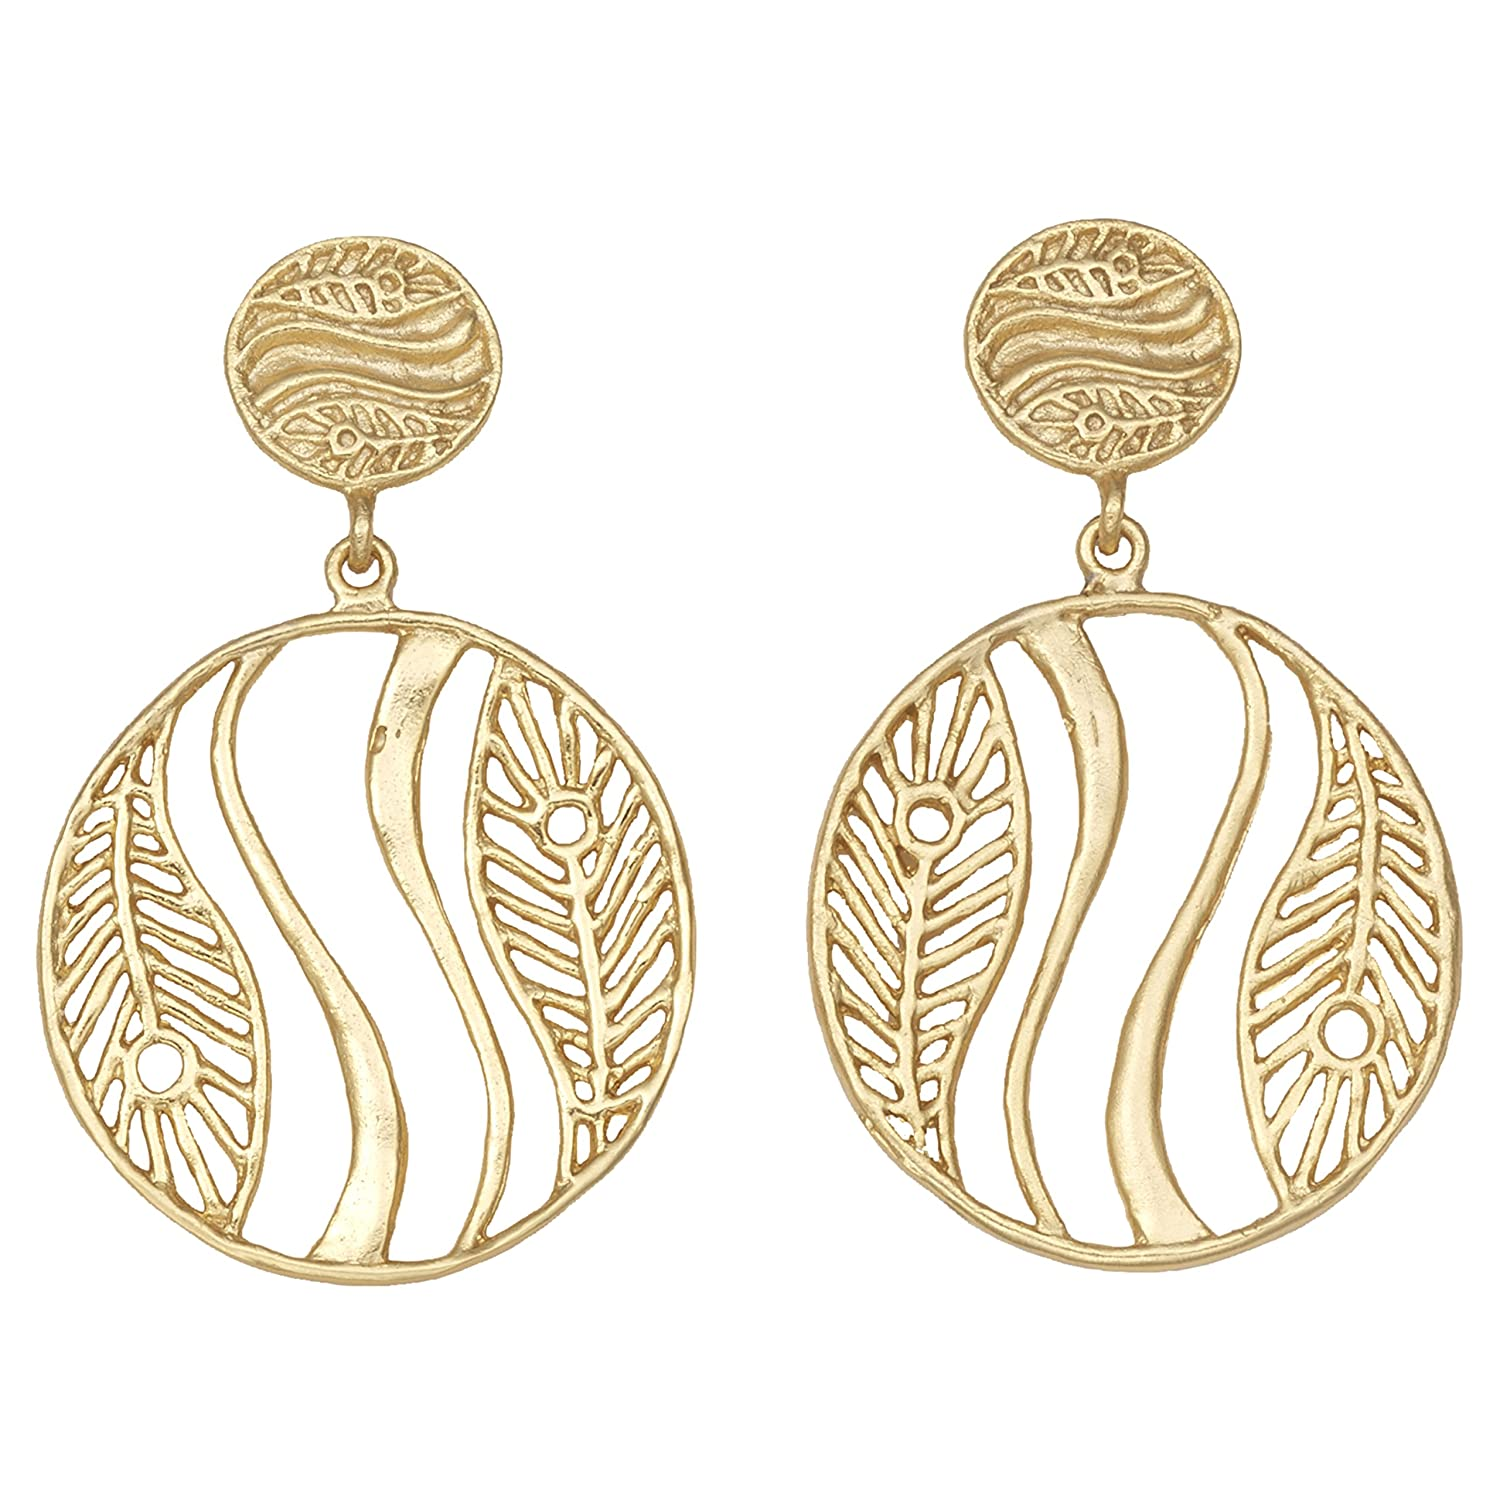 Circles Leaves /& Waves Post Earrings 24k Gold-Plated by Mercedes Shaffer